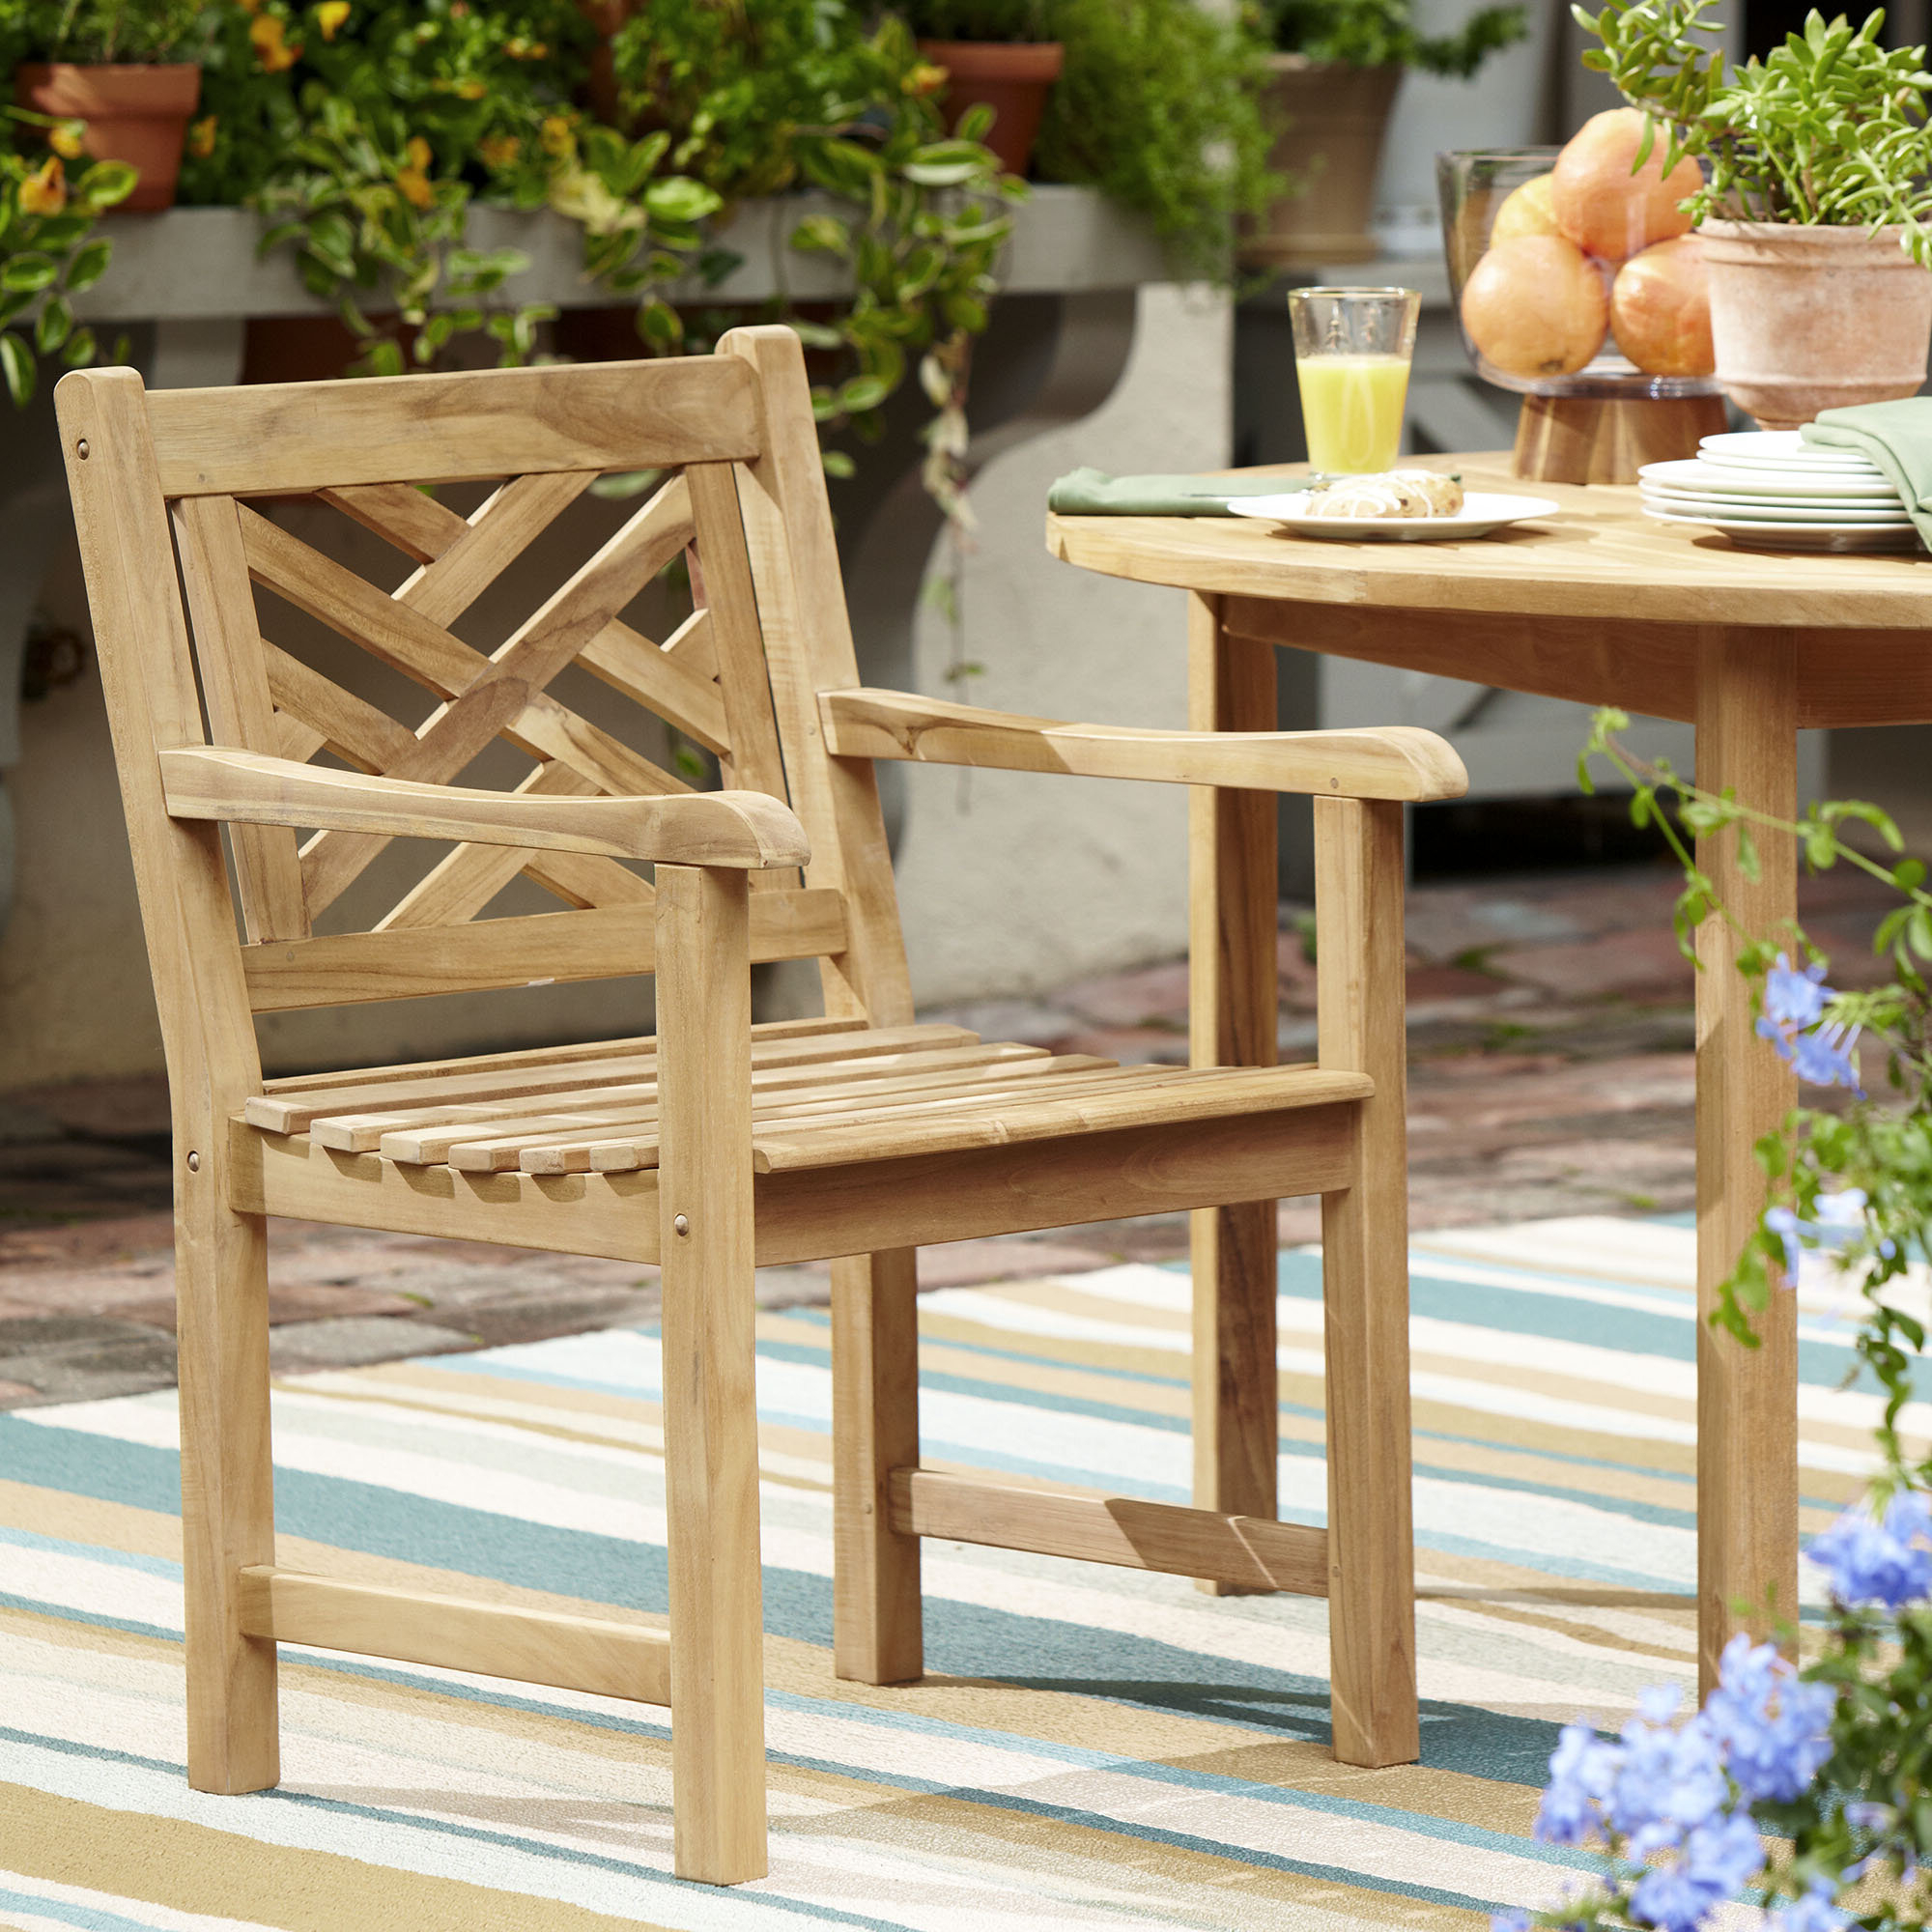 2020 Coleen Outdoor Teak Garden Benches Inside Summerton Lattice Back Teak Patio Dining Chair (View 19 of 30)